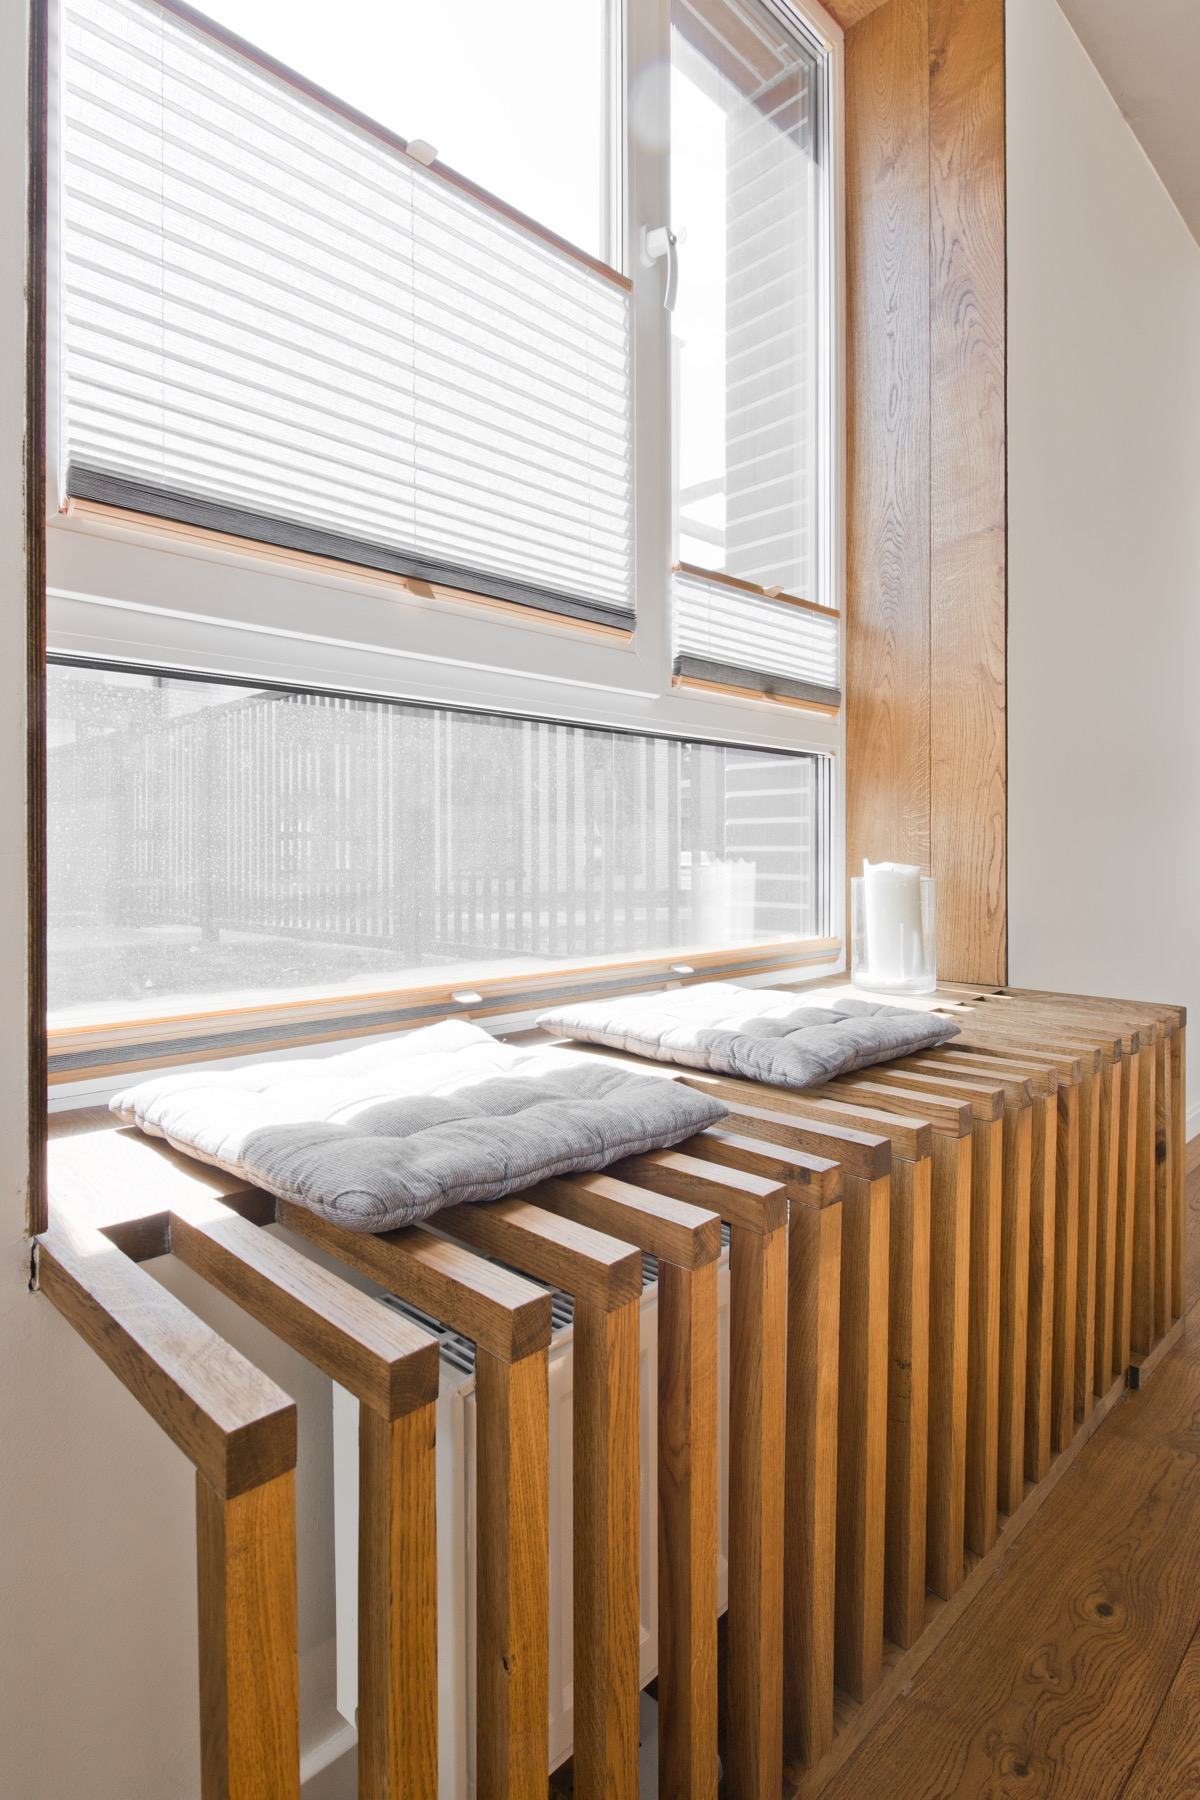 radiator-design Interior Design Ideas. - ^